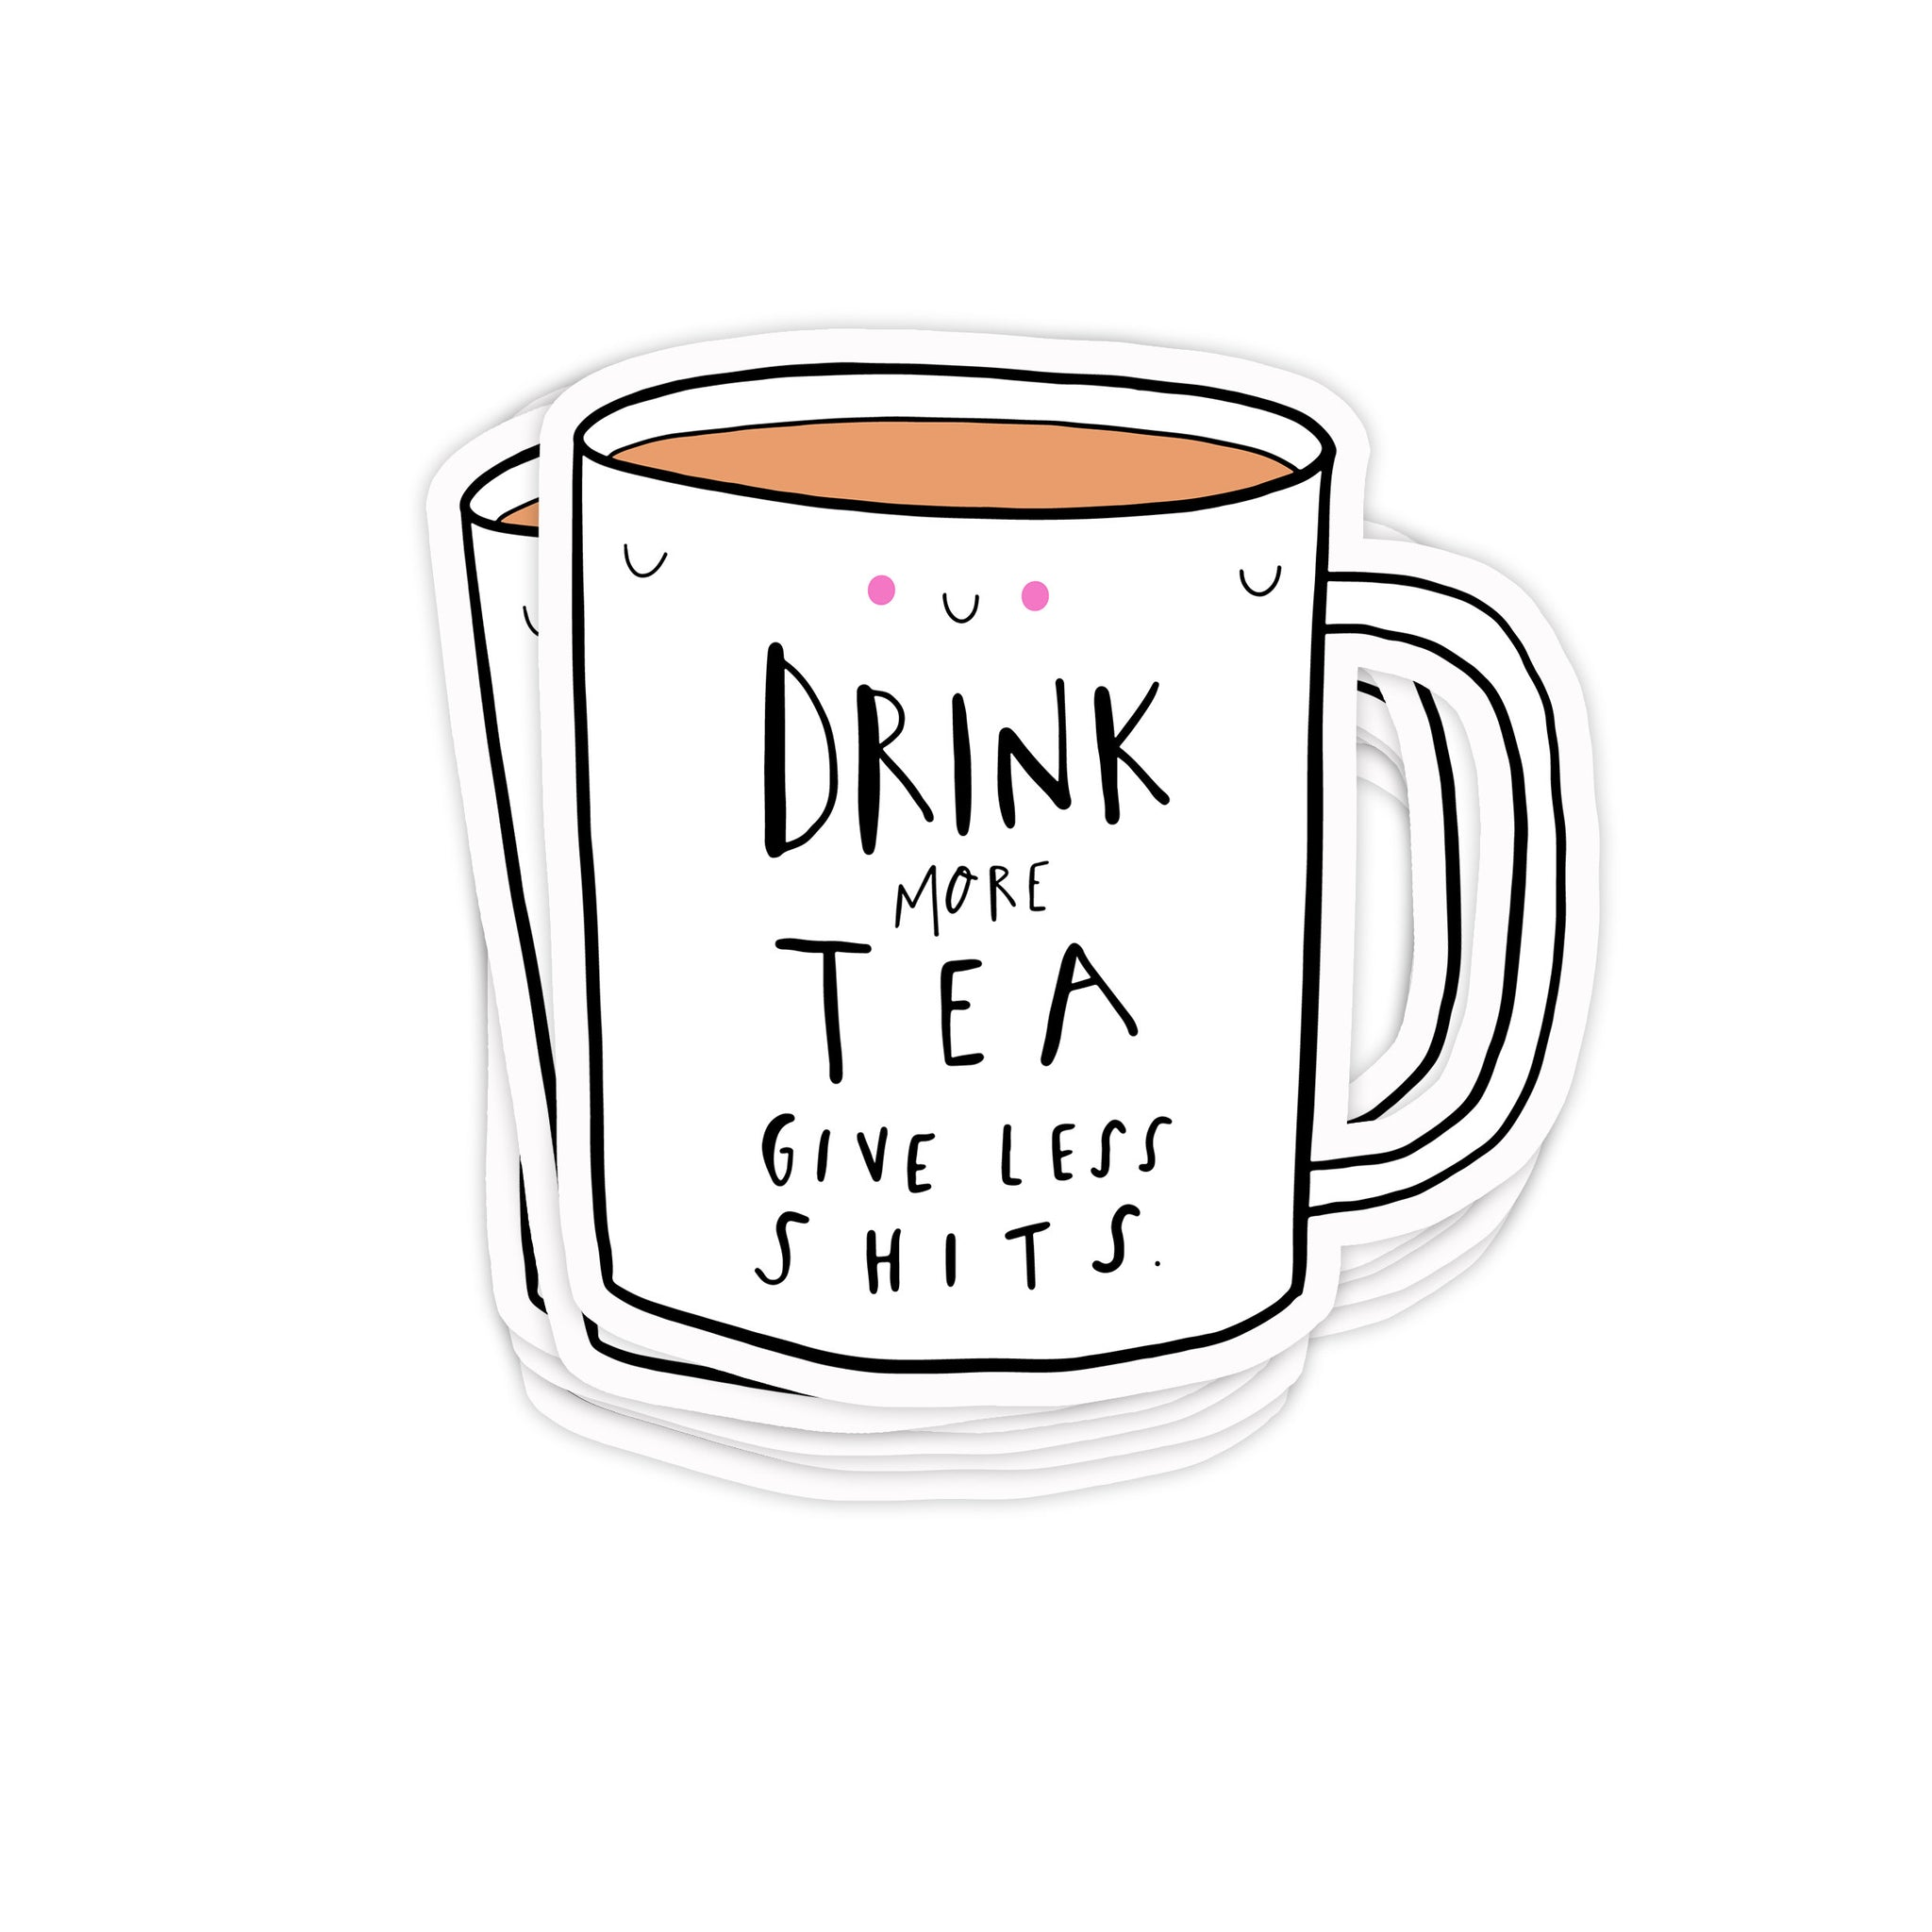 Drink more tea sticker - Hofficraft